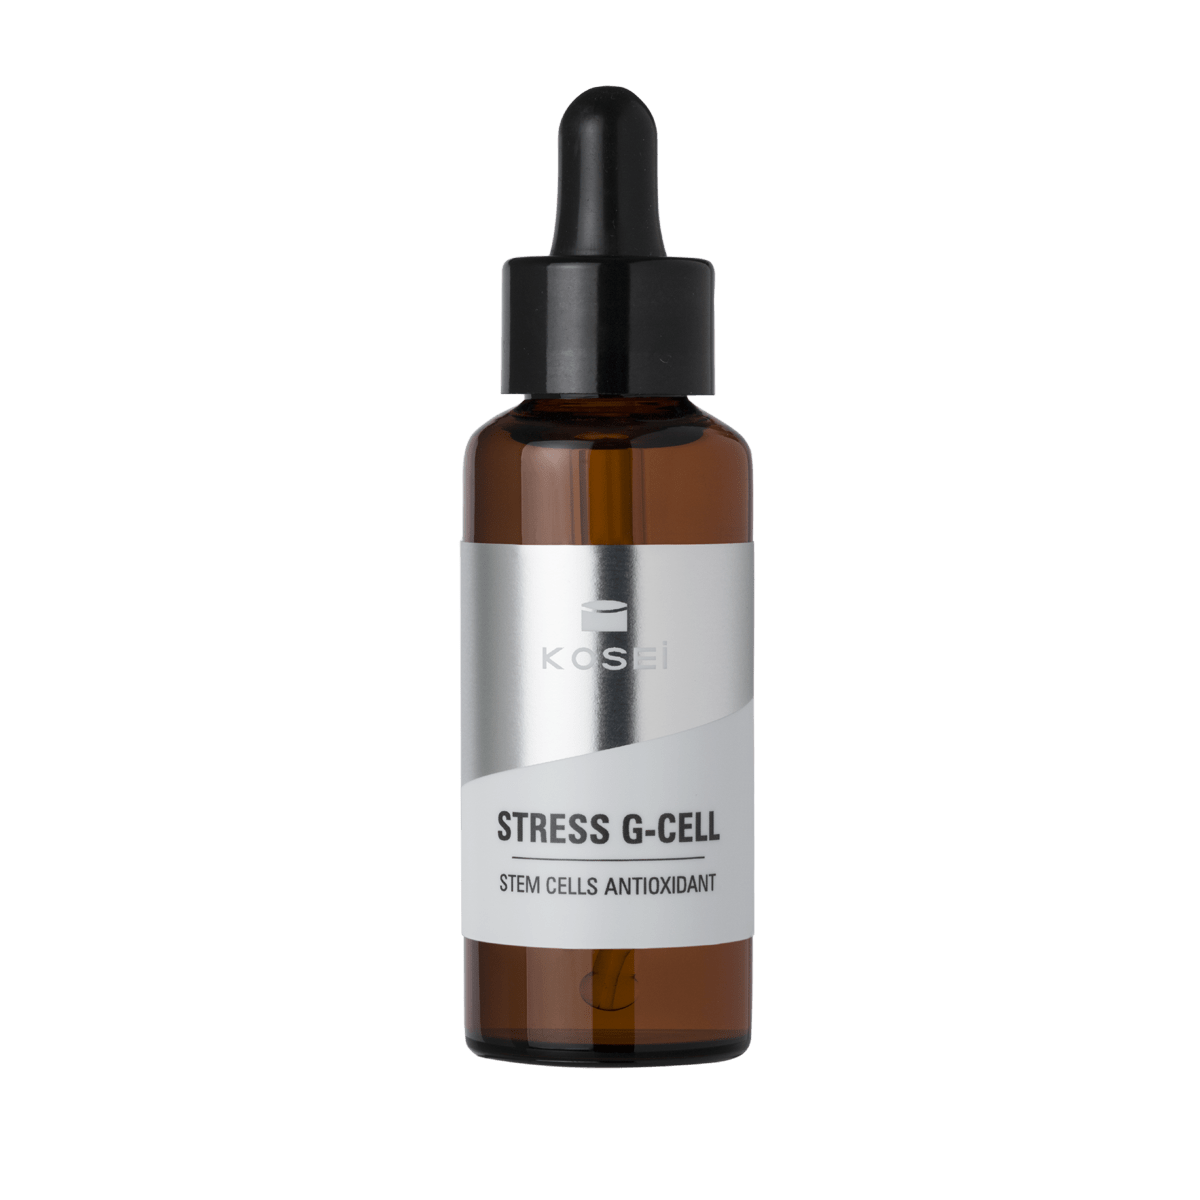 STRESS G-CELL Stem cells antioxidant – Booster serum antioxidante